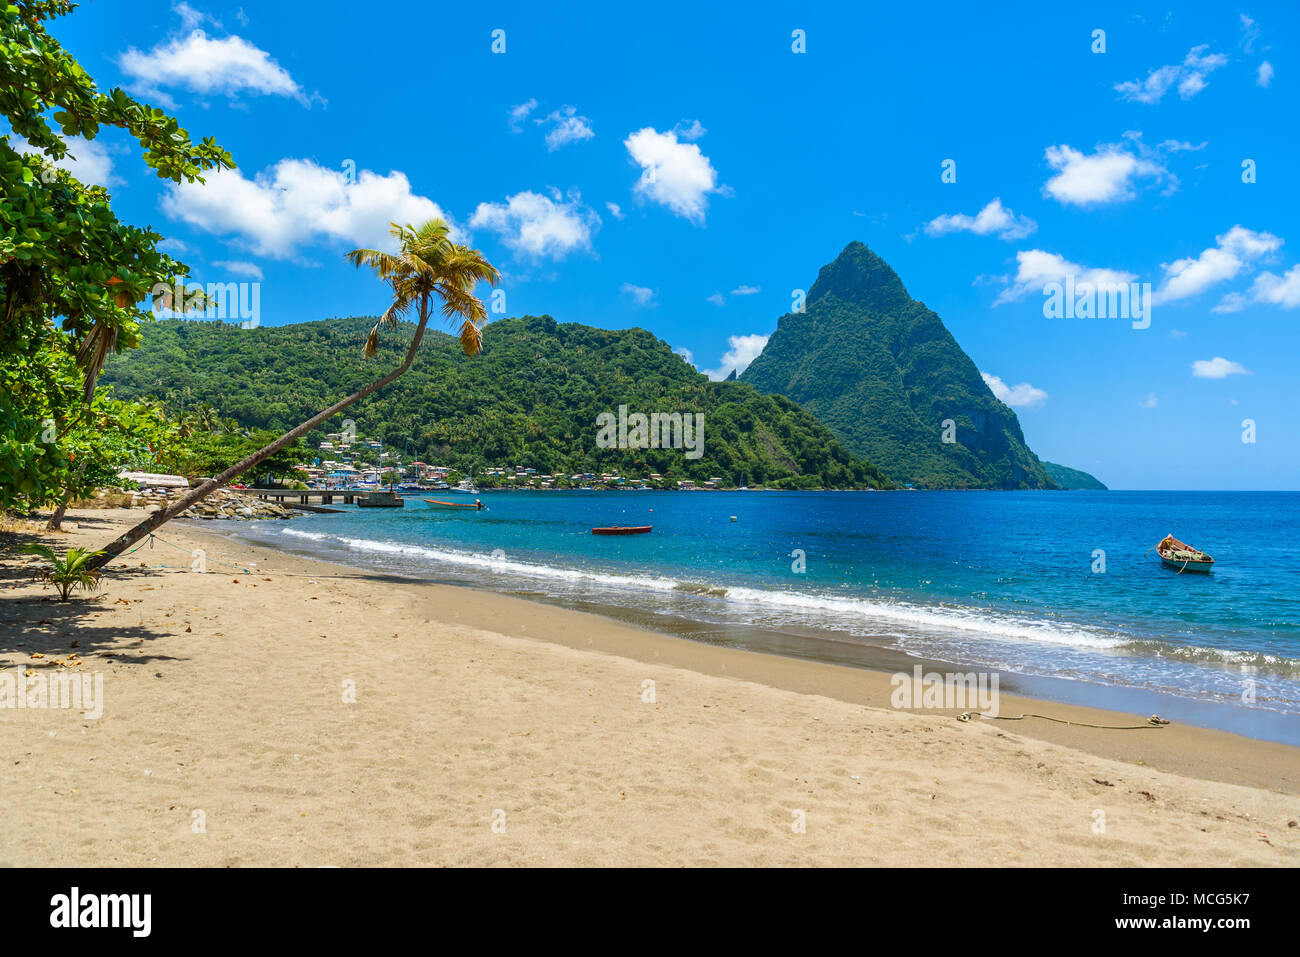 Paradise beach at Soufriere Bay with view to Piton at small town Soufriere in Saint Lucia, Tropical Caribbean Island. - Stock Image